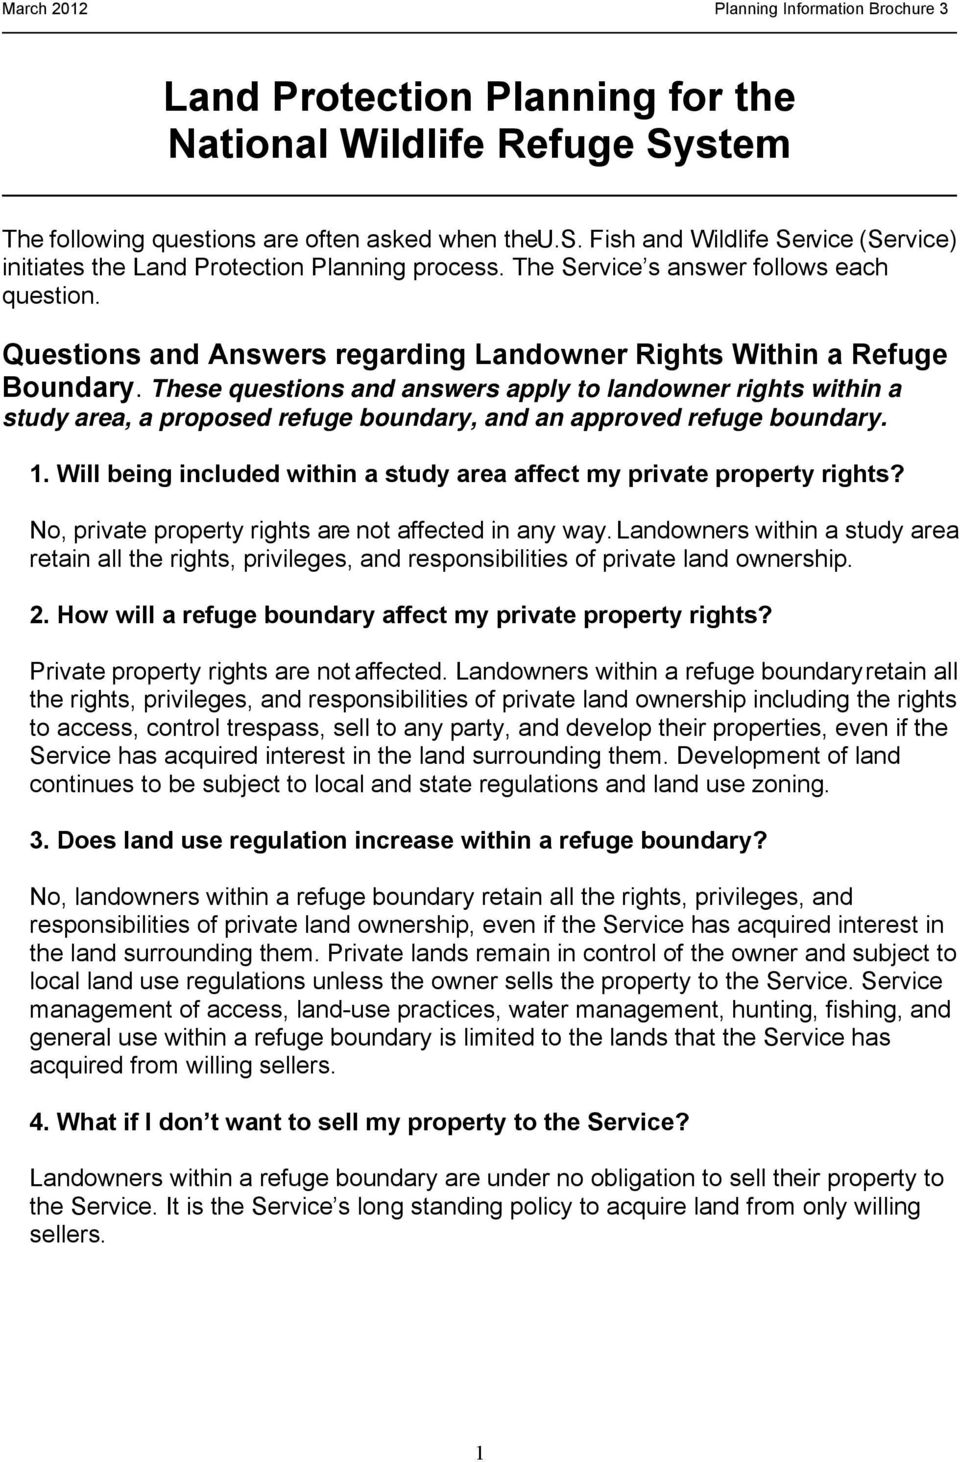 These questions and answers apply to landowner rights within a study area, a proposed refuge boundary, and an approved refuge boundary. 1.